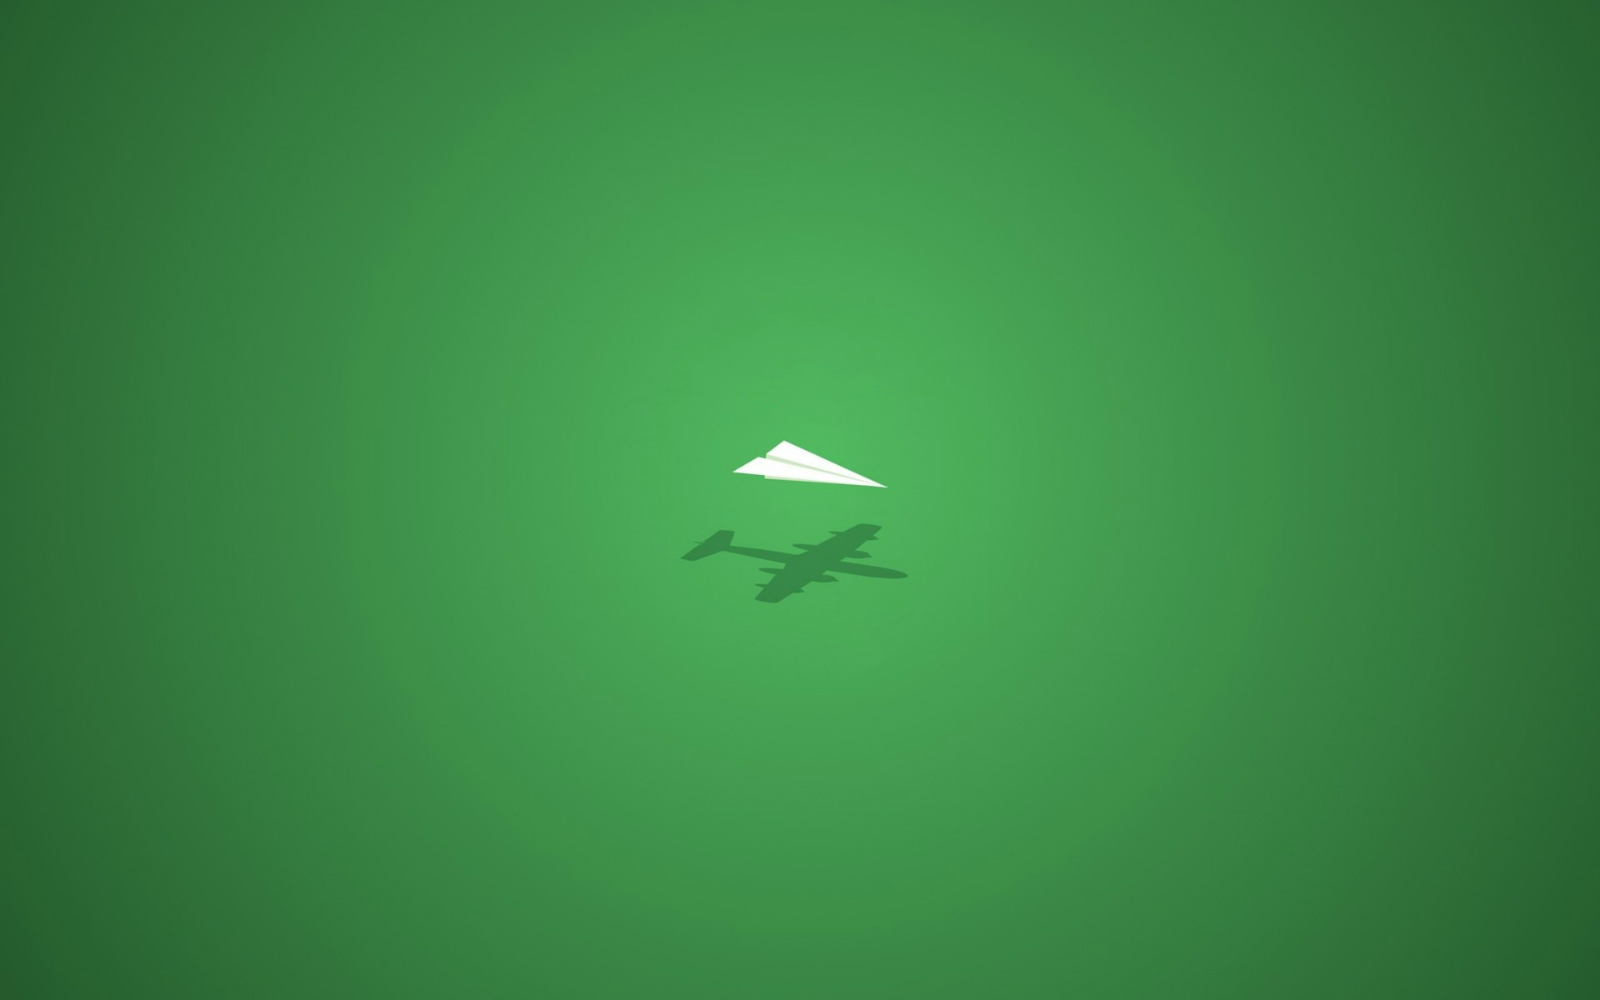 Paper Airplane Green